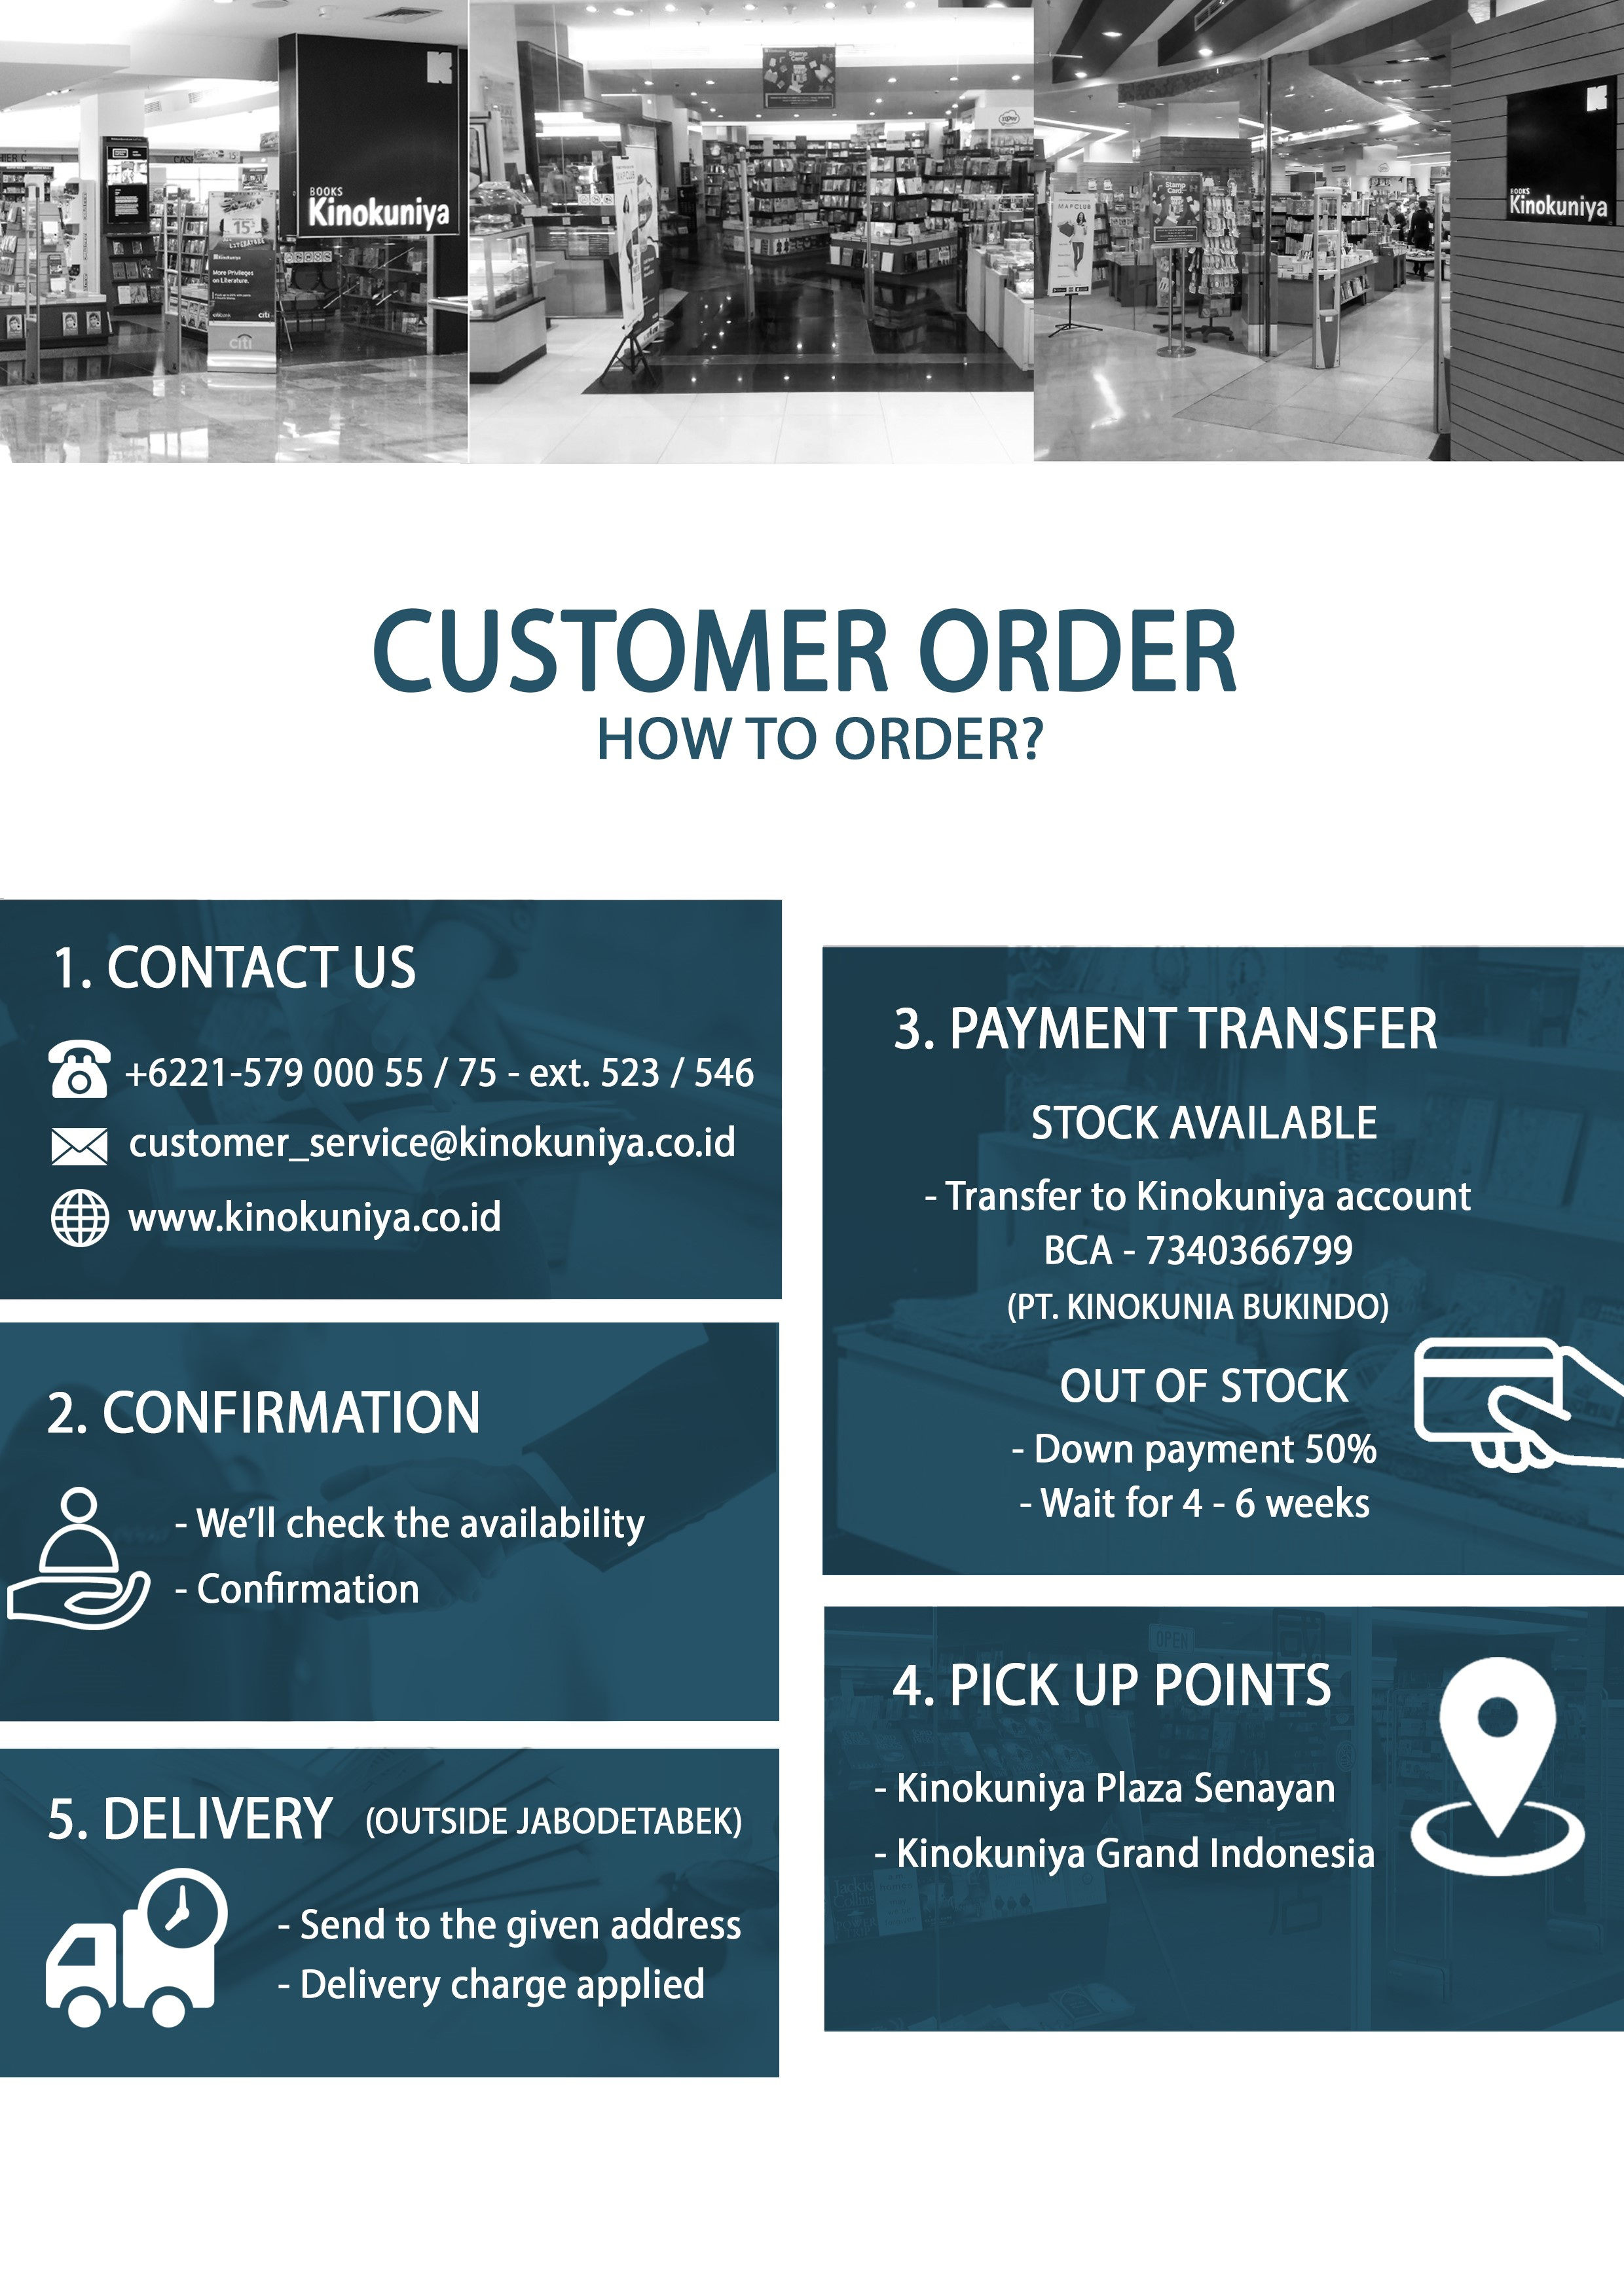 How to Order Kinokuniya Indonesia